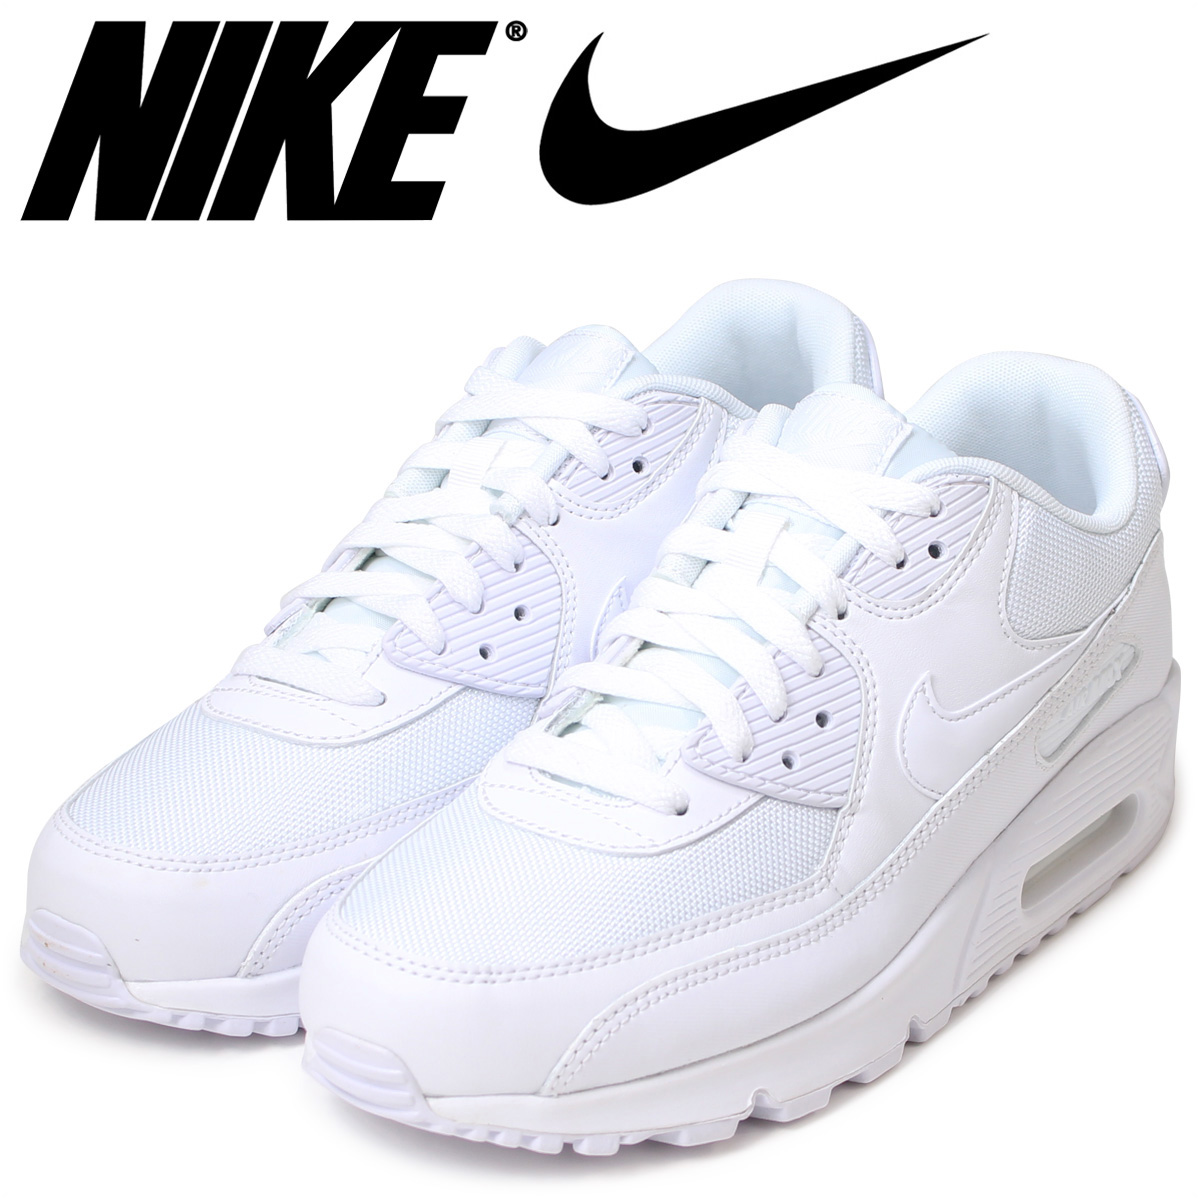 size 40 5fdc2 e2005 SneaK Online Shop: NIKE AIR MAX 90 ESSENTIAL Kie Ney AMAX 90 ...